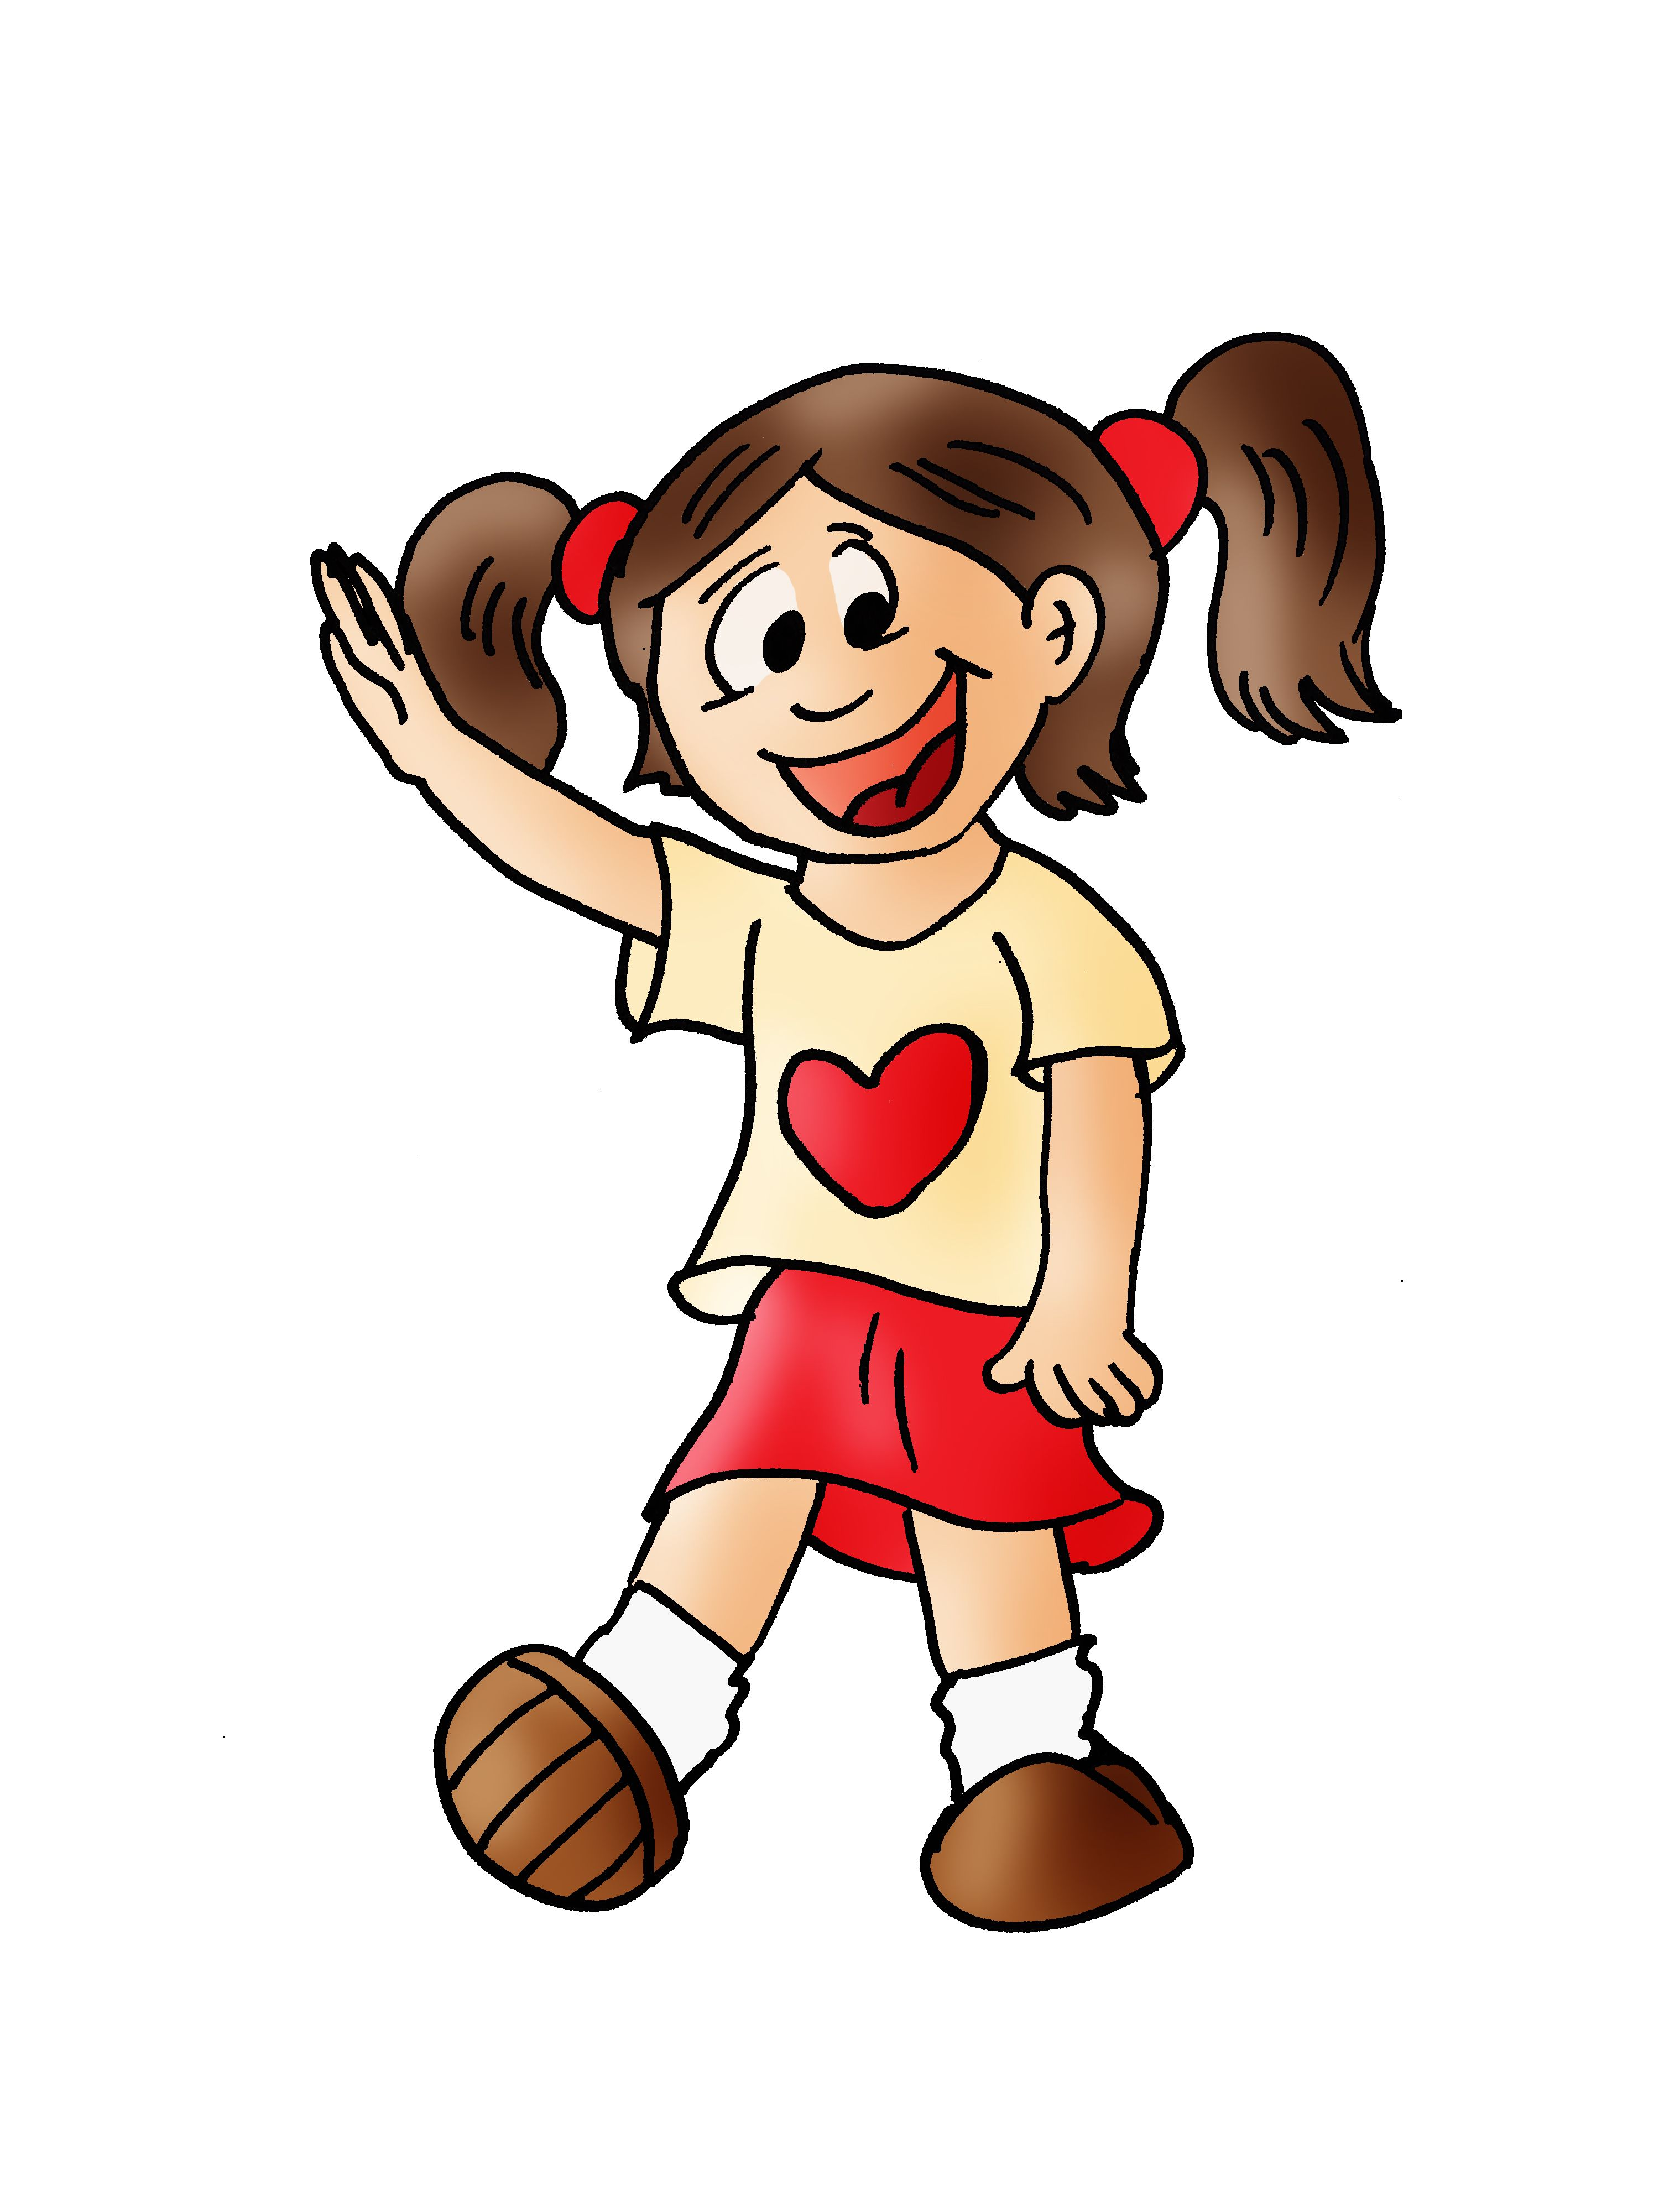 """Cammy, """"Hi! This is me! Just saying hi!"""" #Cammy #Cute #Childrensbook #Kidsbooks #Heart www.findthecutes.com"""